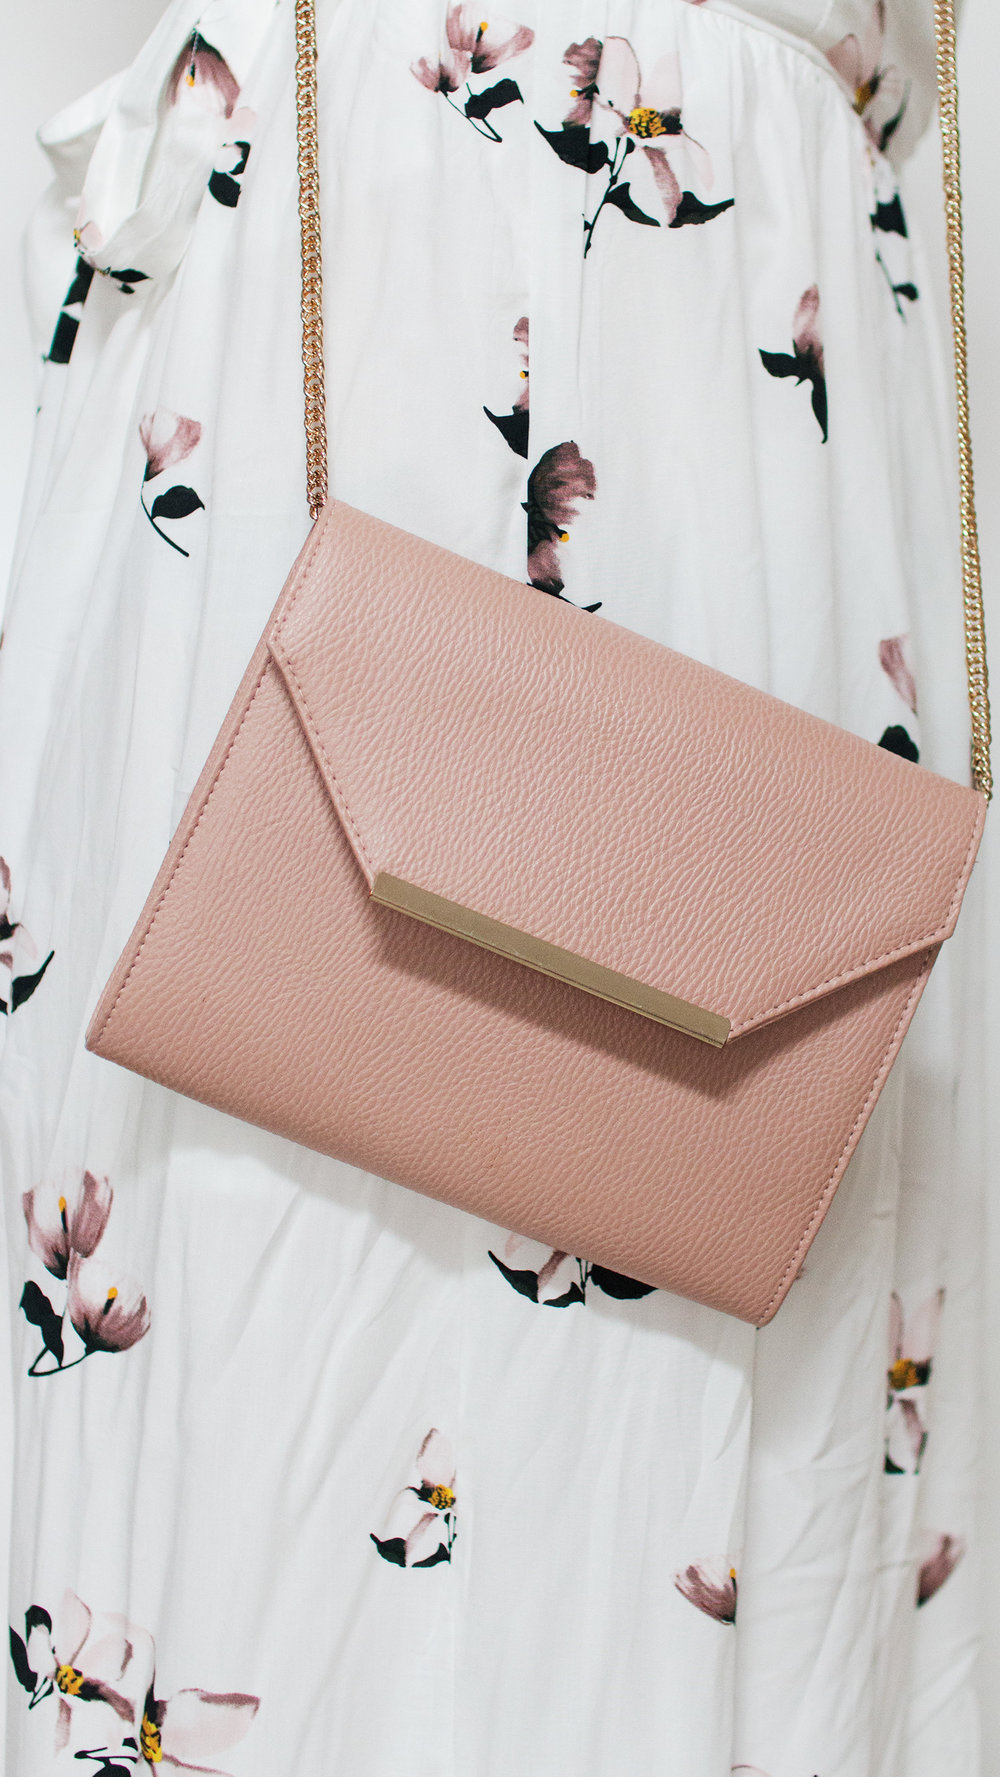 Blush coloured clutch bag against white floral dress